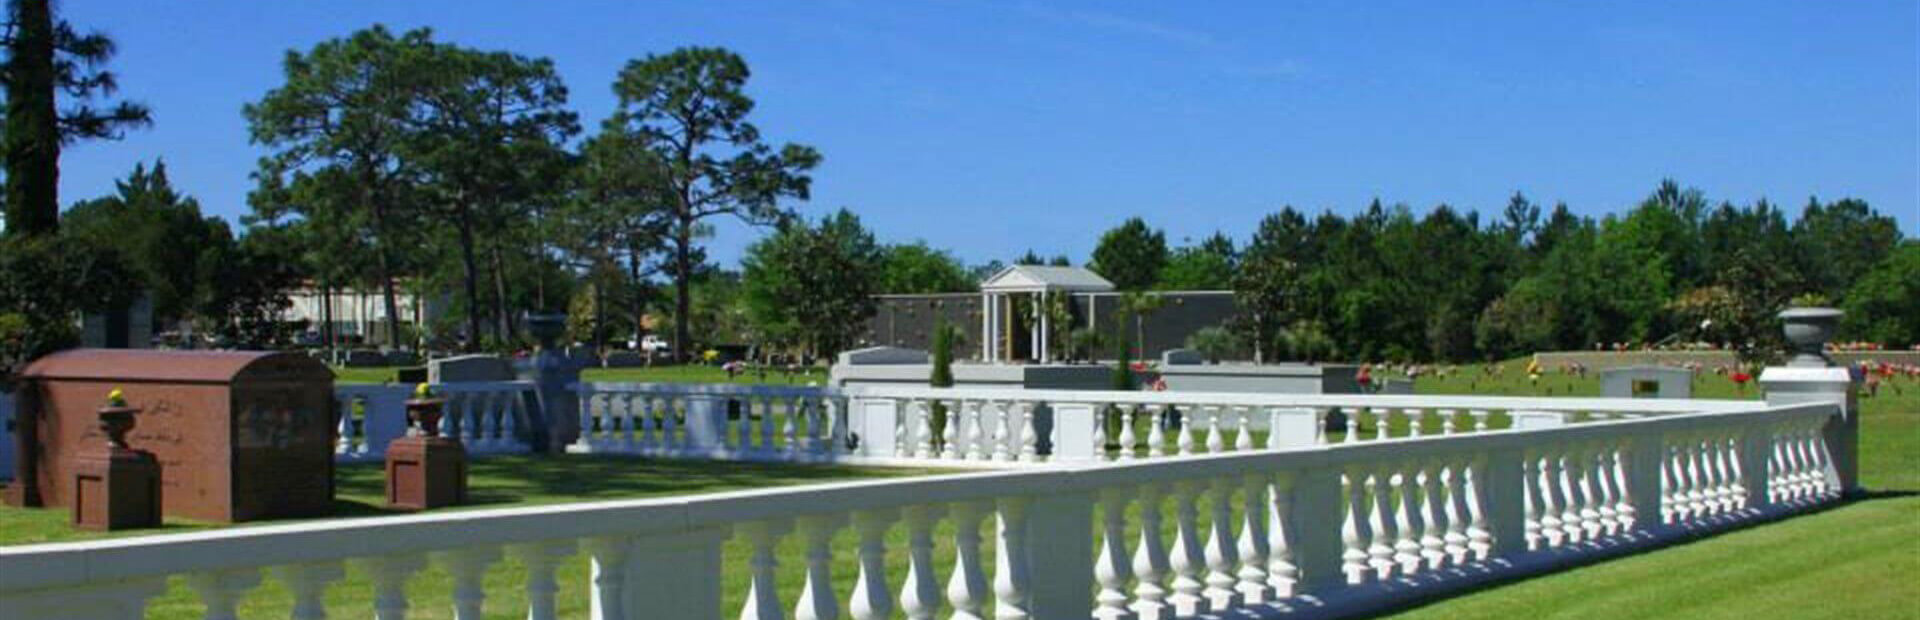 Funeral Home and Cemeteries in Panama City, FL